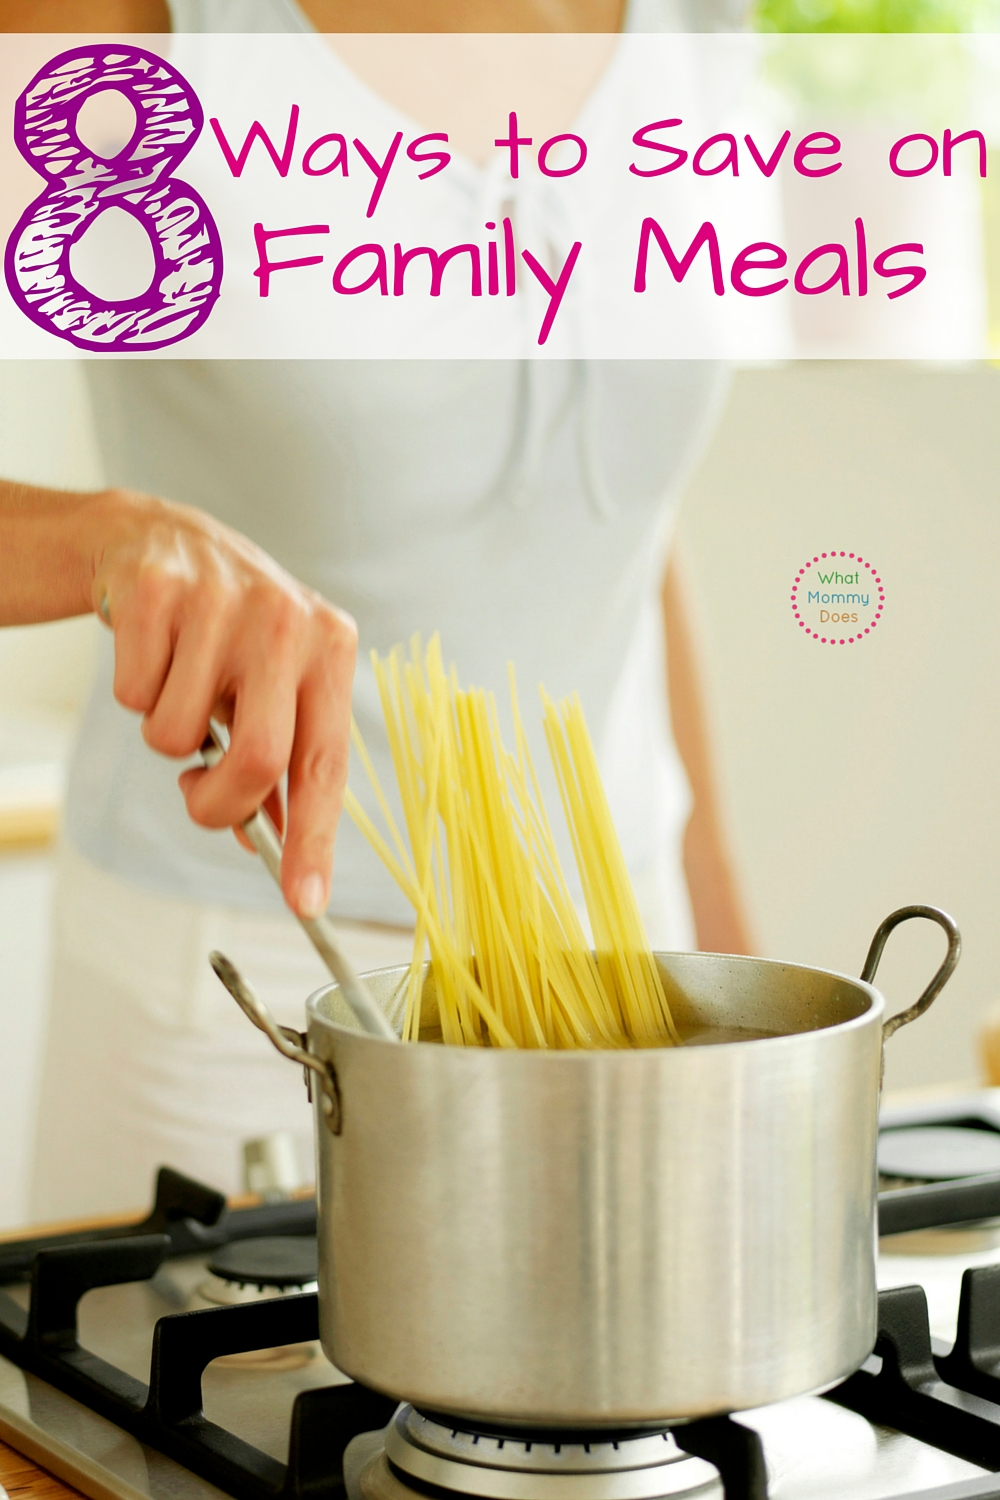 Ways to Save Money on Food - because meal planning isn't the only way to save on the family budget!